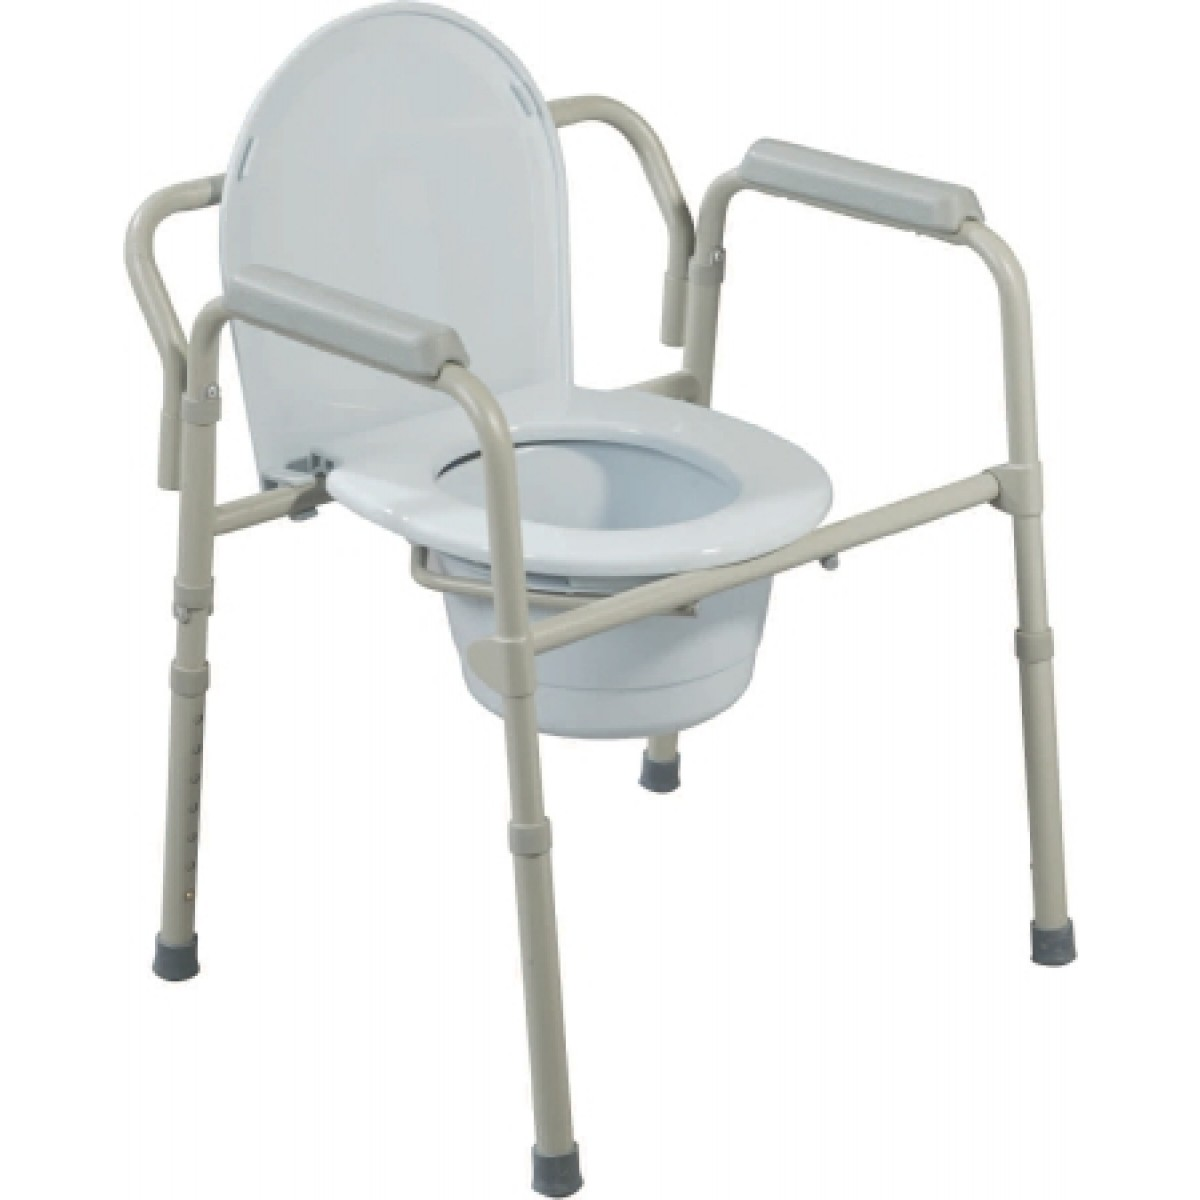 Folding Commode Chair Folding Steel Commode 16 5 To 22 5 Inch 11148n 4